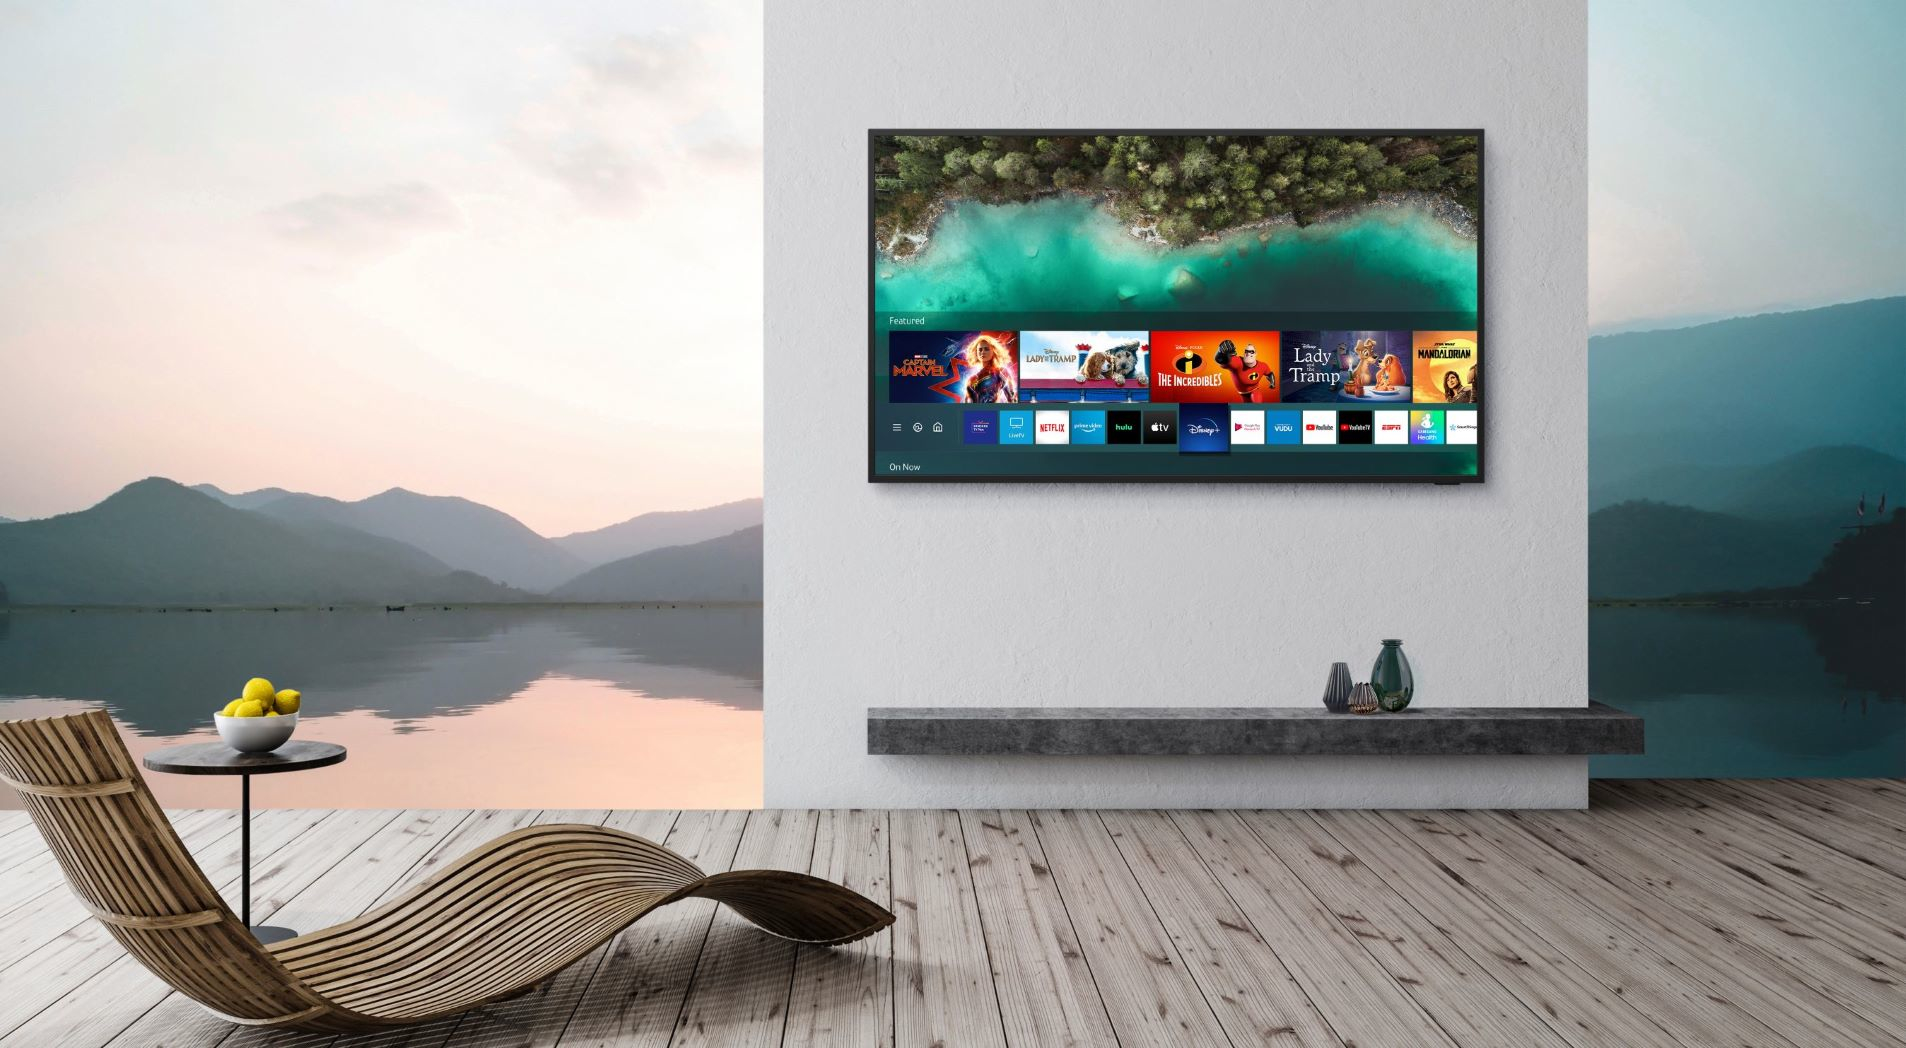 Samsung Takes the Home Entertainment Experience Outdoors with the Latest  Lifestyle TV and Soundbar, The Terrace   Executive Bulletin